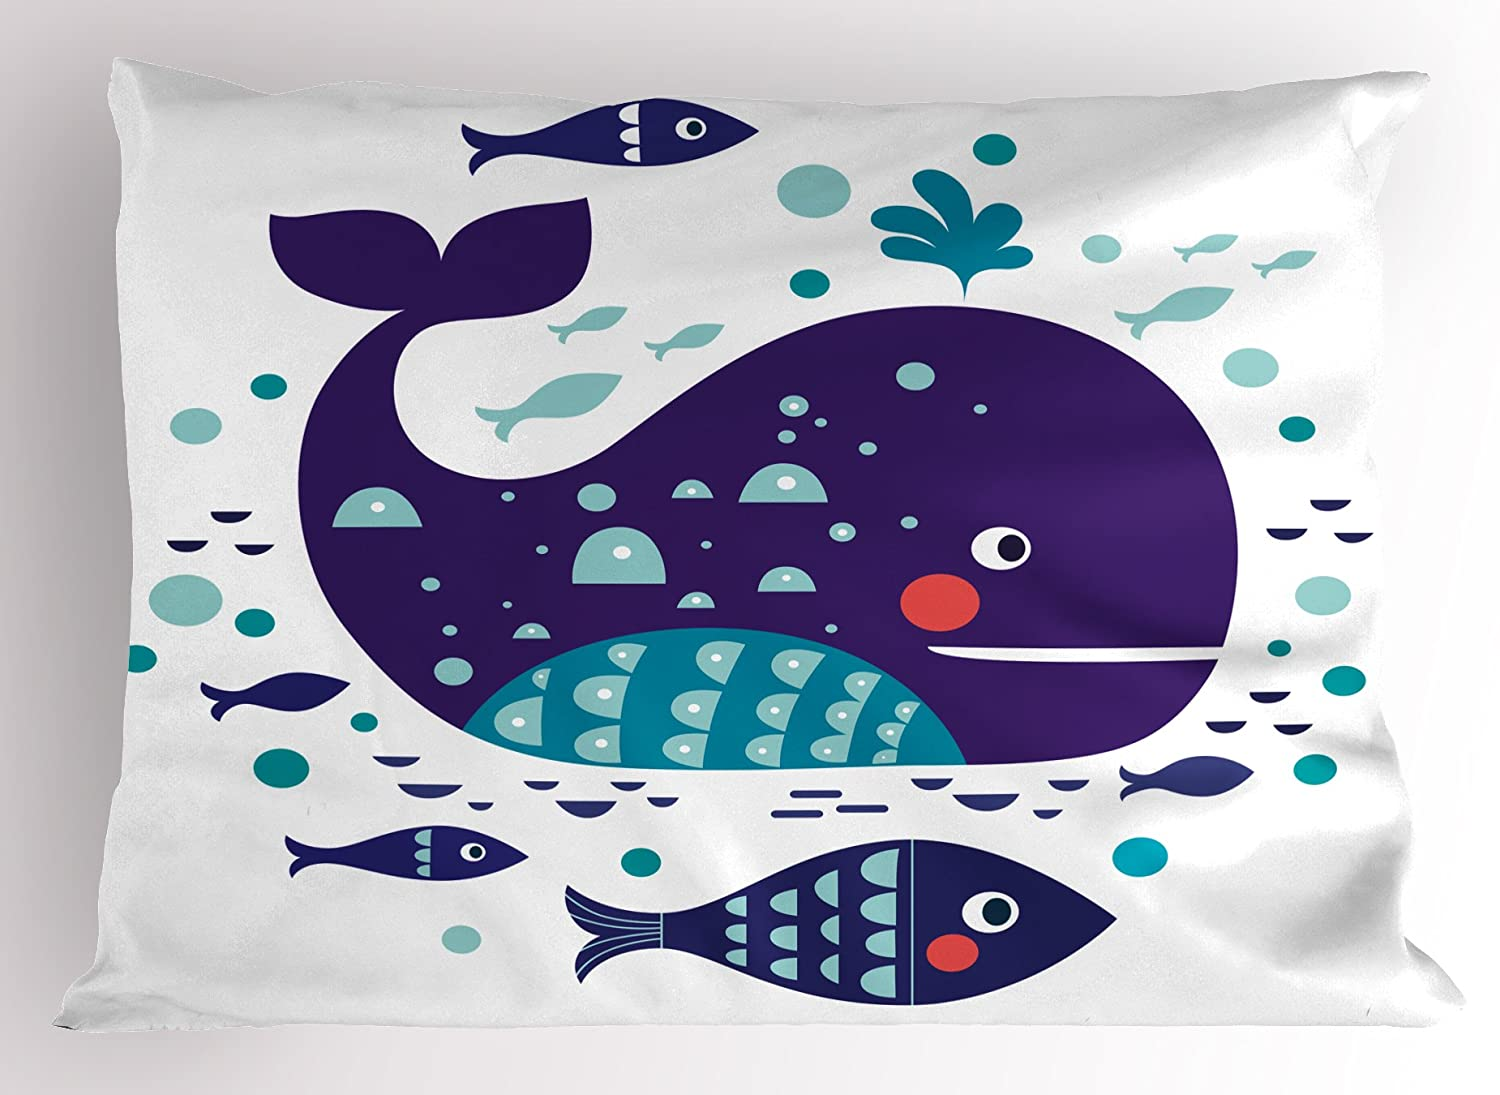 Ambesonne Whale Pillow Sham, Navy Sea Theme Cartoon Big Fish with Others in Ocean Swimming Image Art, Decorative Standard Size Printed Pillowcase, 26